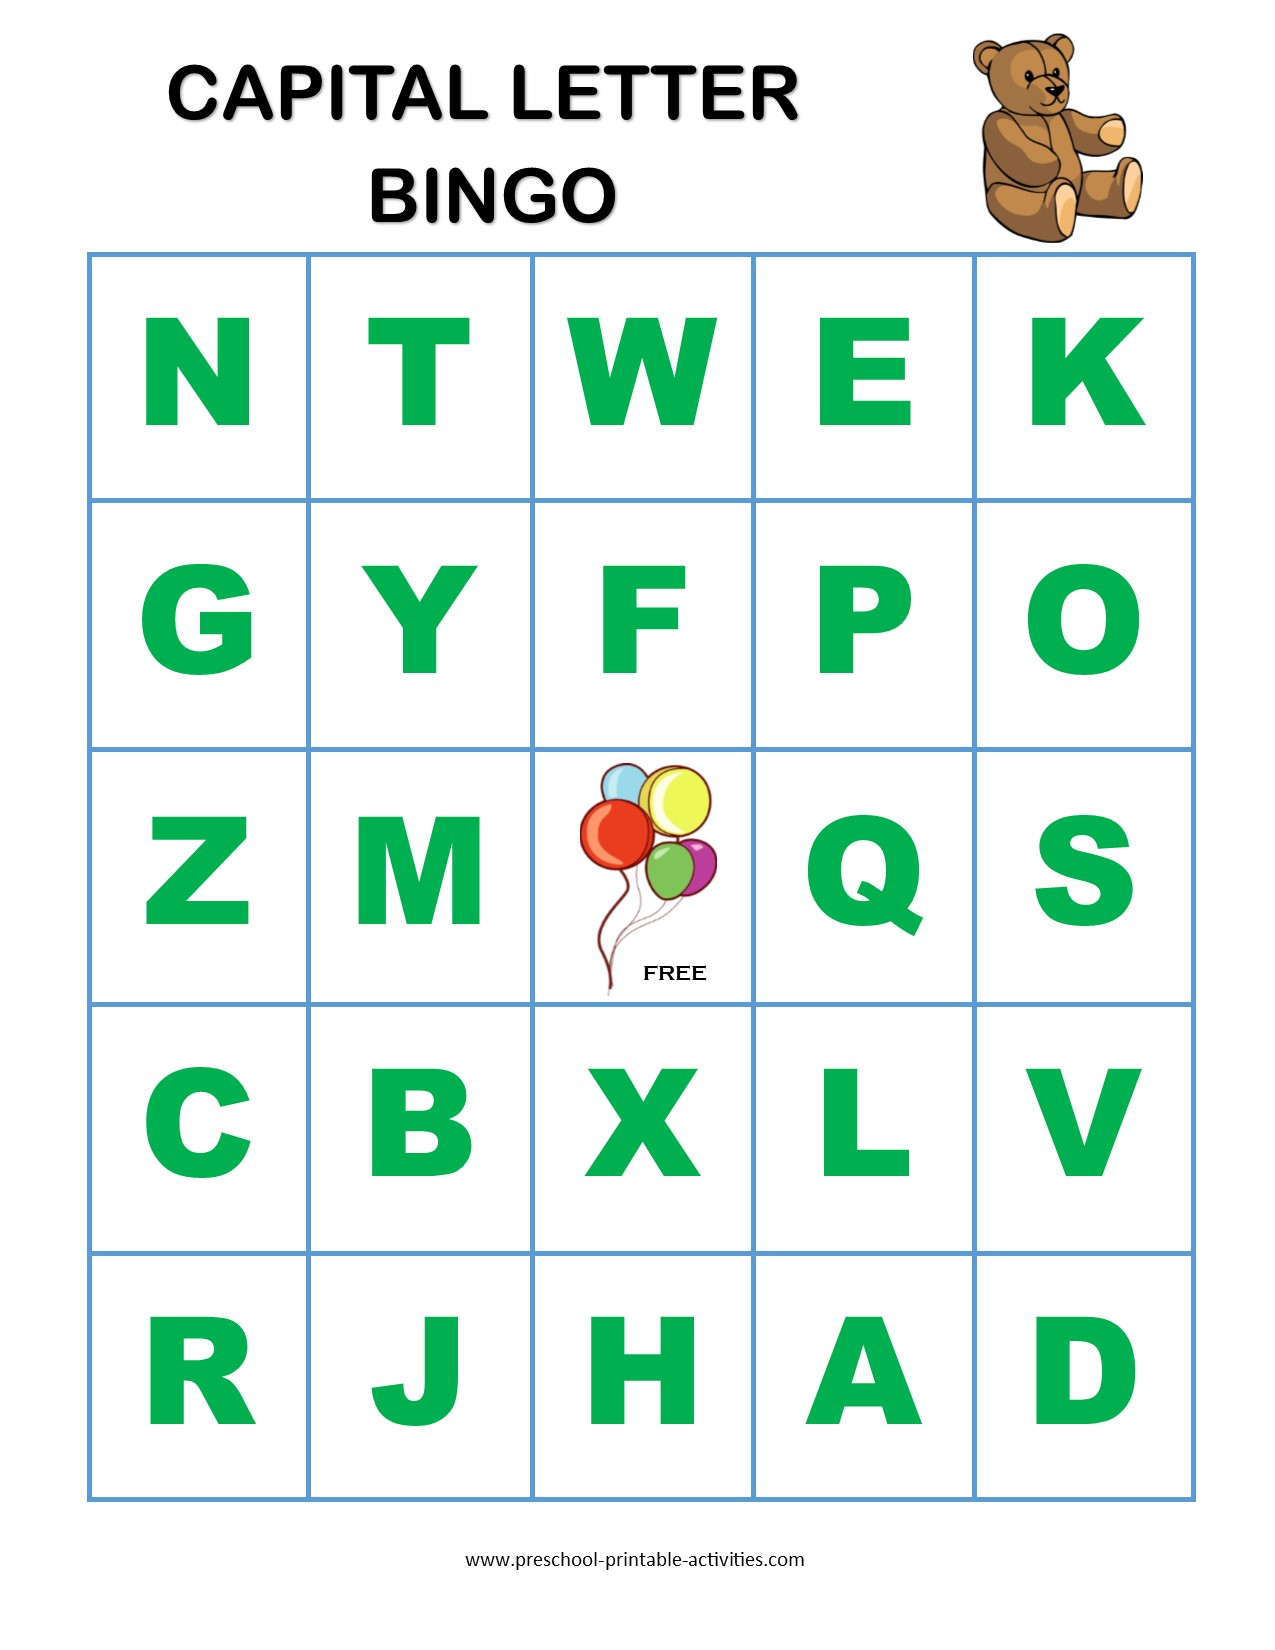 Capital letter bingo game board for preschoolers